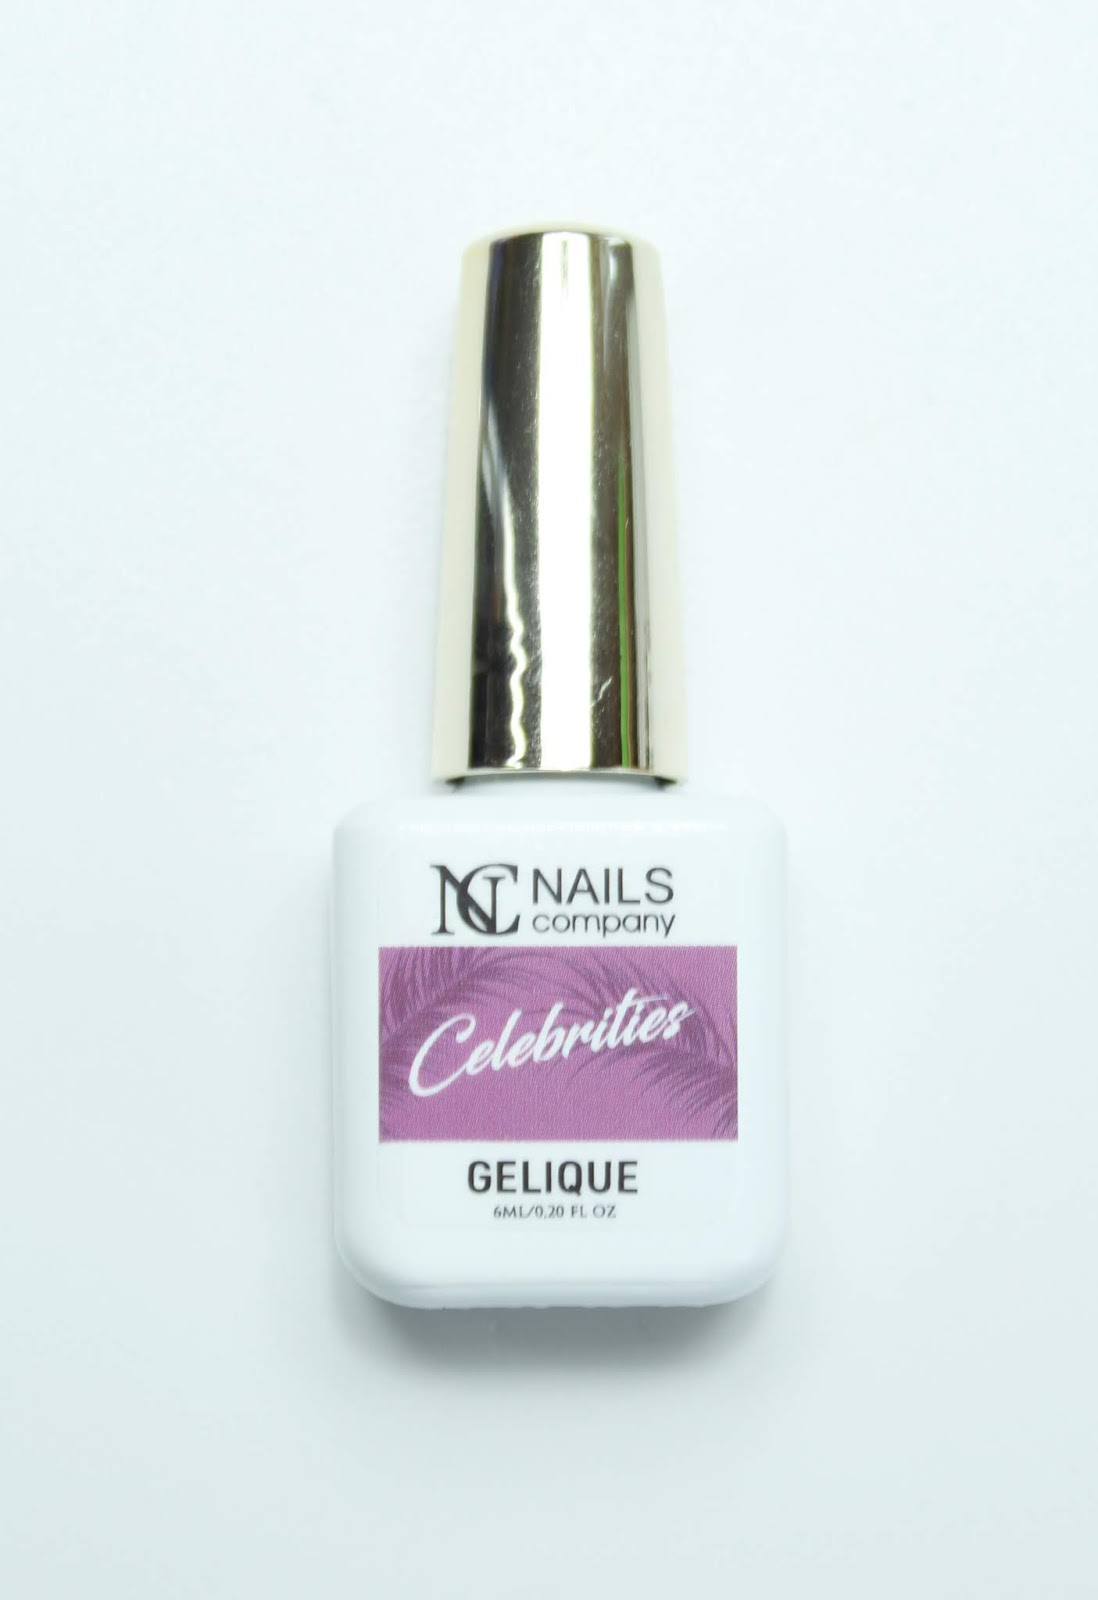 NC Nails Company Celebrieties